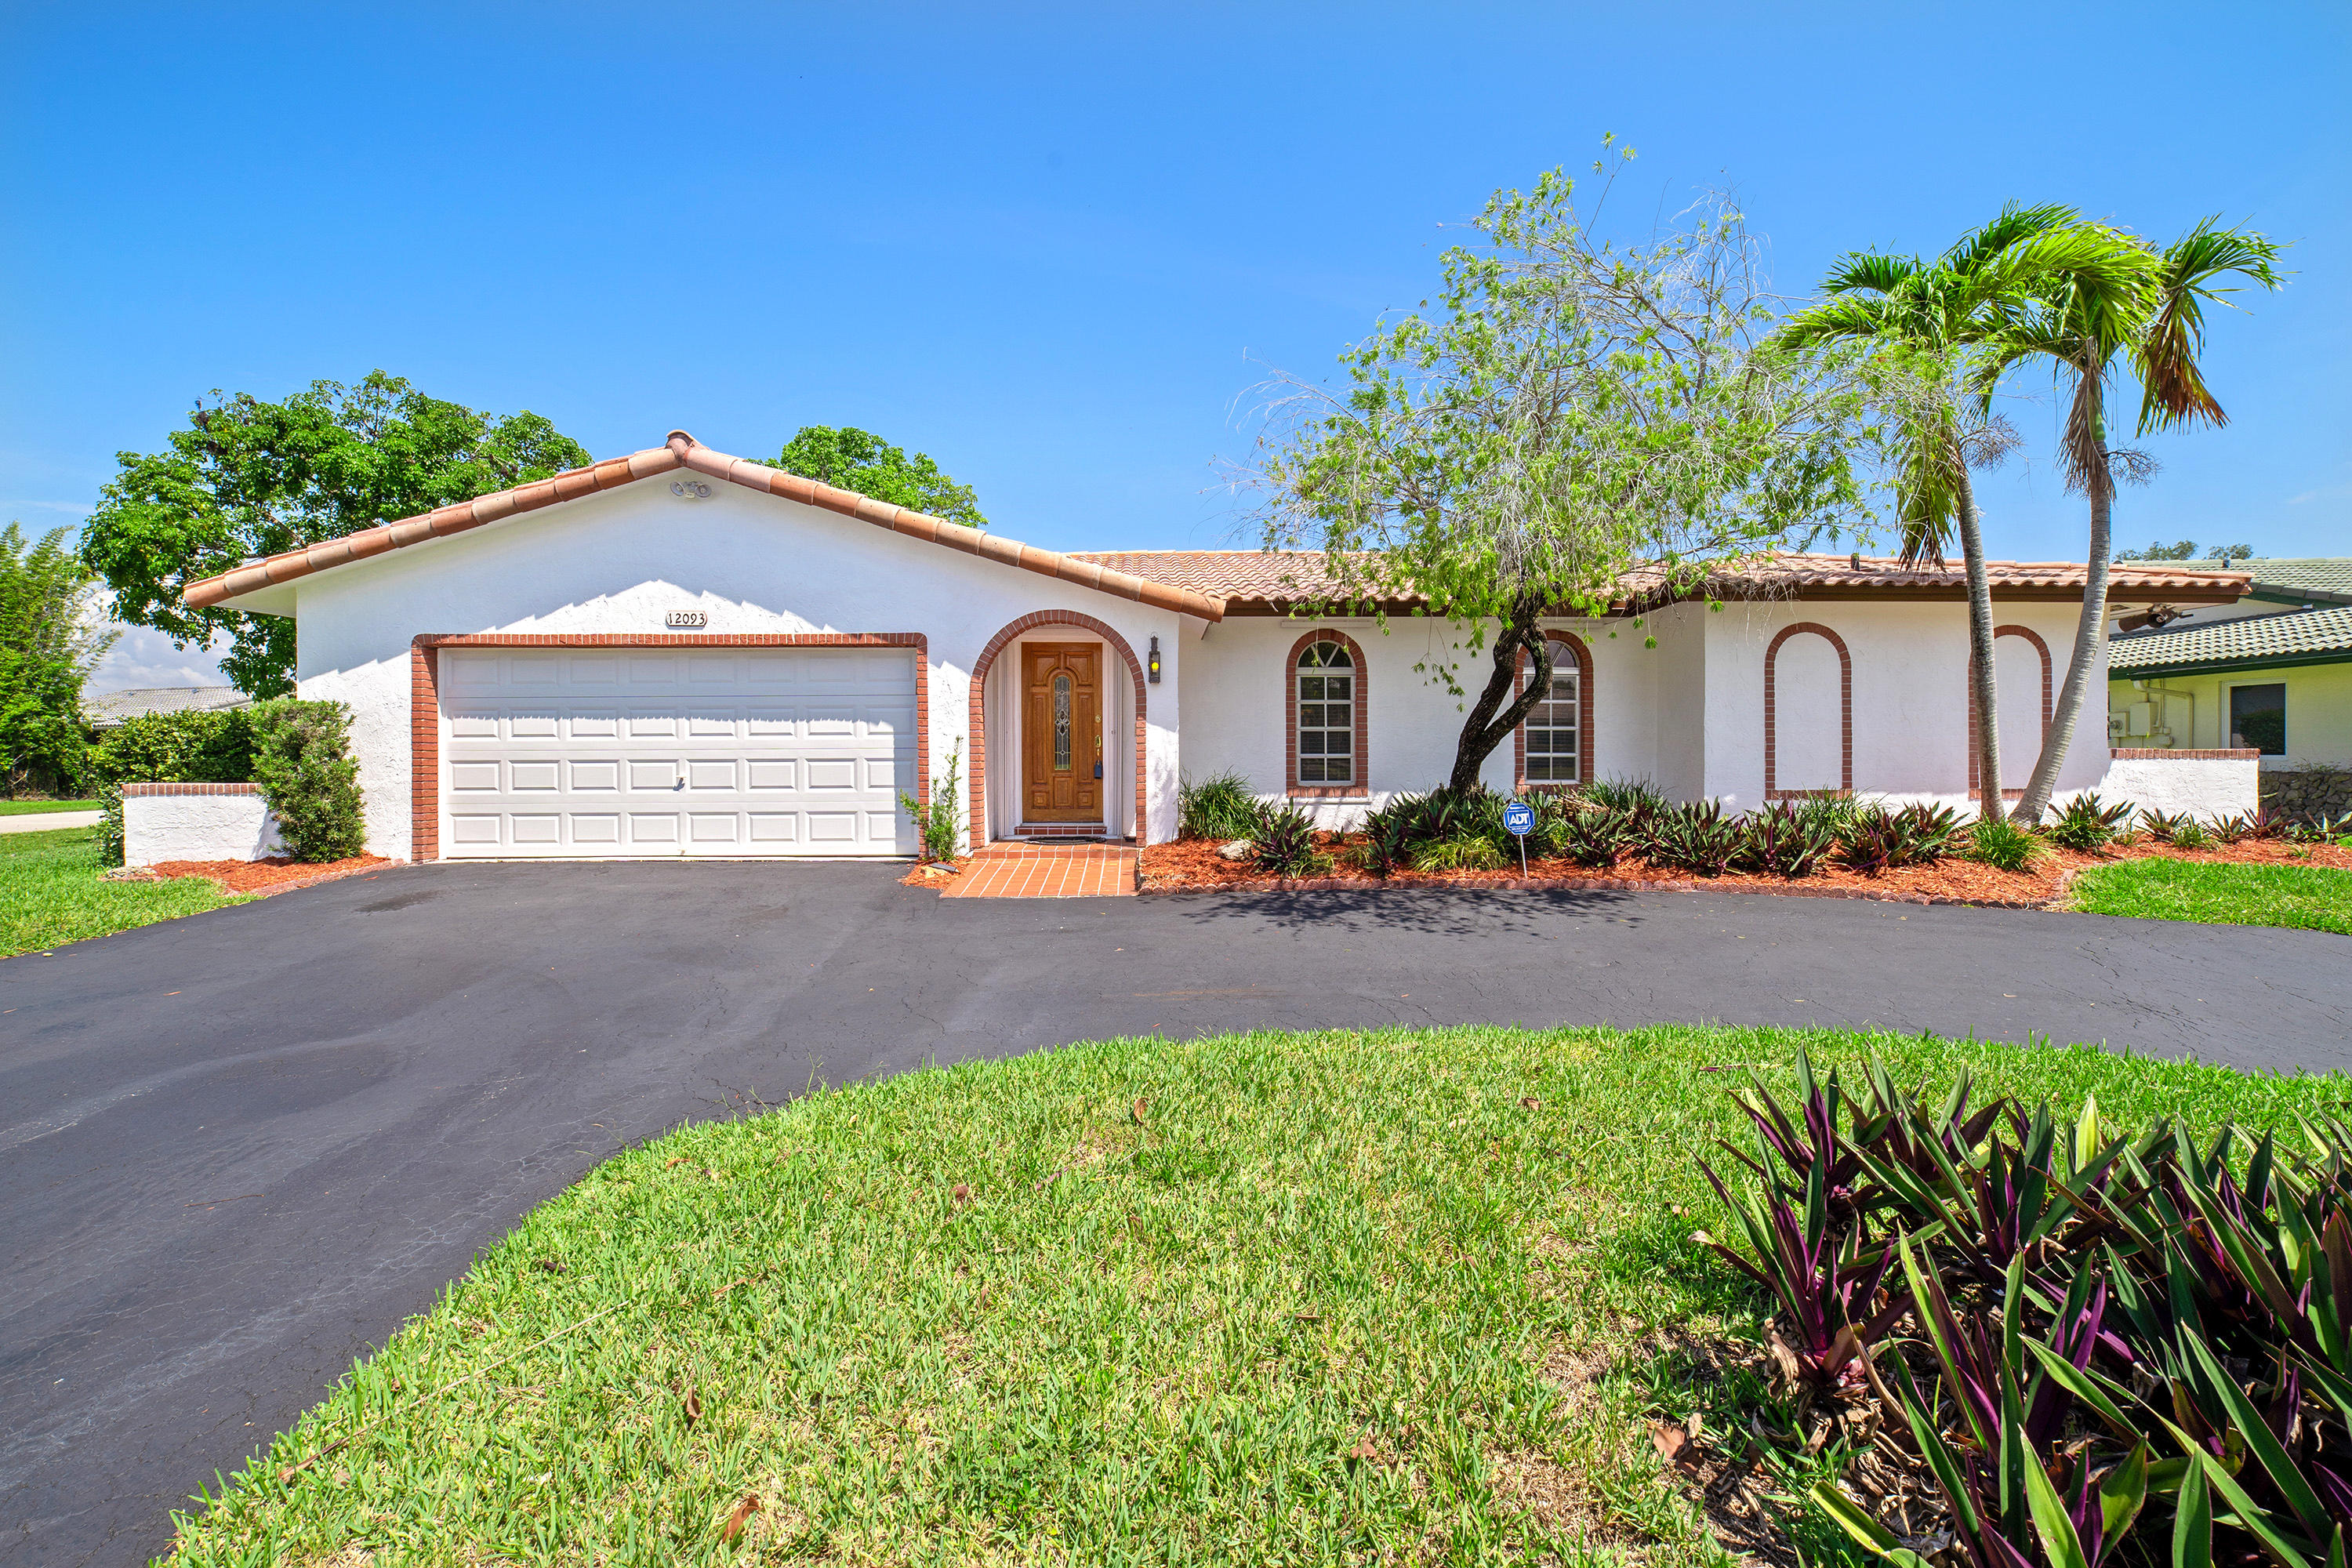 12093 24th Street, Coral Springs, Florida 33065, 3 Bedrooms Bedrooms, ,2 BathroomsBathrooms,A,Single family,24th,RX-10528956